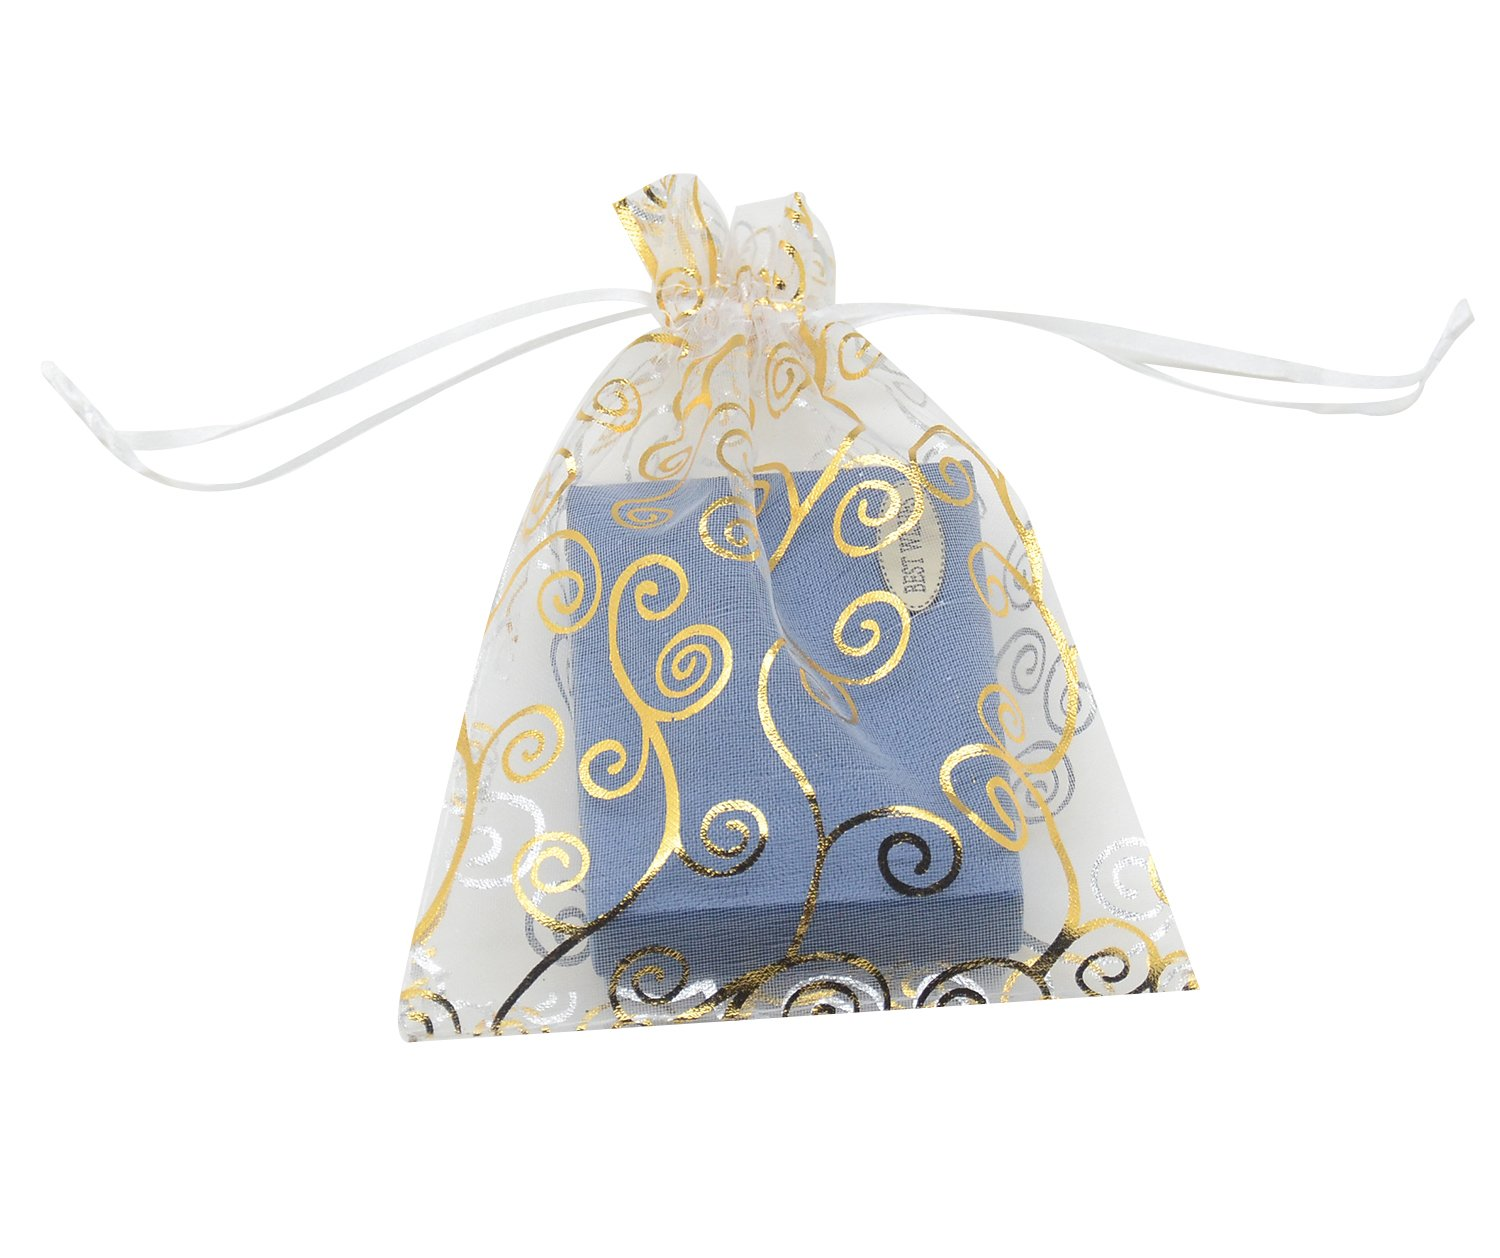 SUNGULF 100pcs Organza Pouch Bag Drawstring 4x6'' 10x15cm Strong Gift Candy Bag Jewelry Party Wedding Favor (Gold White)